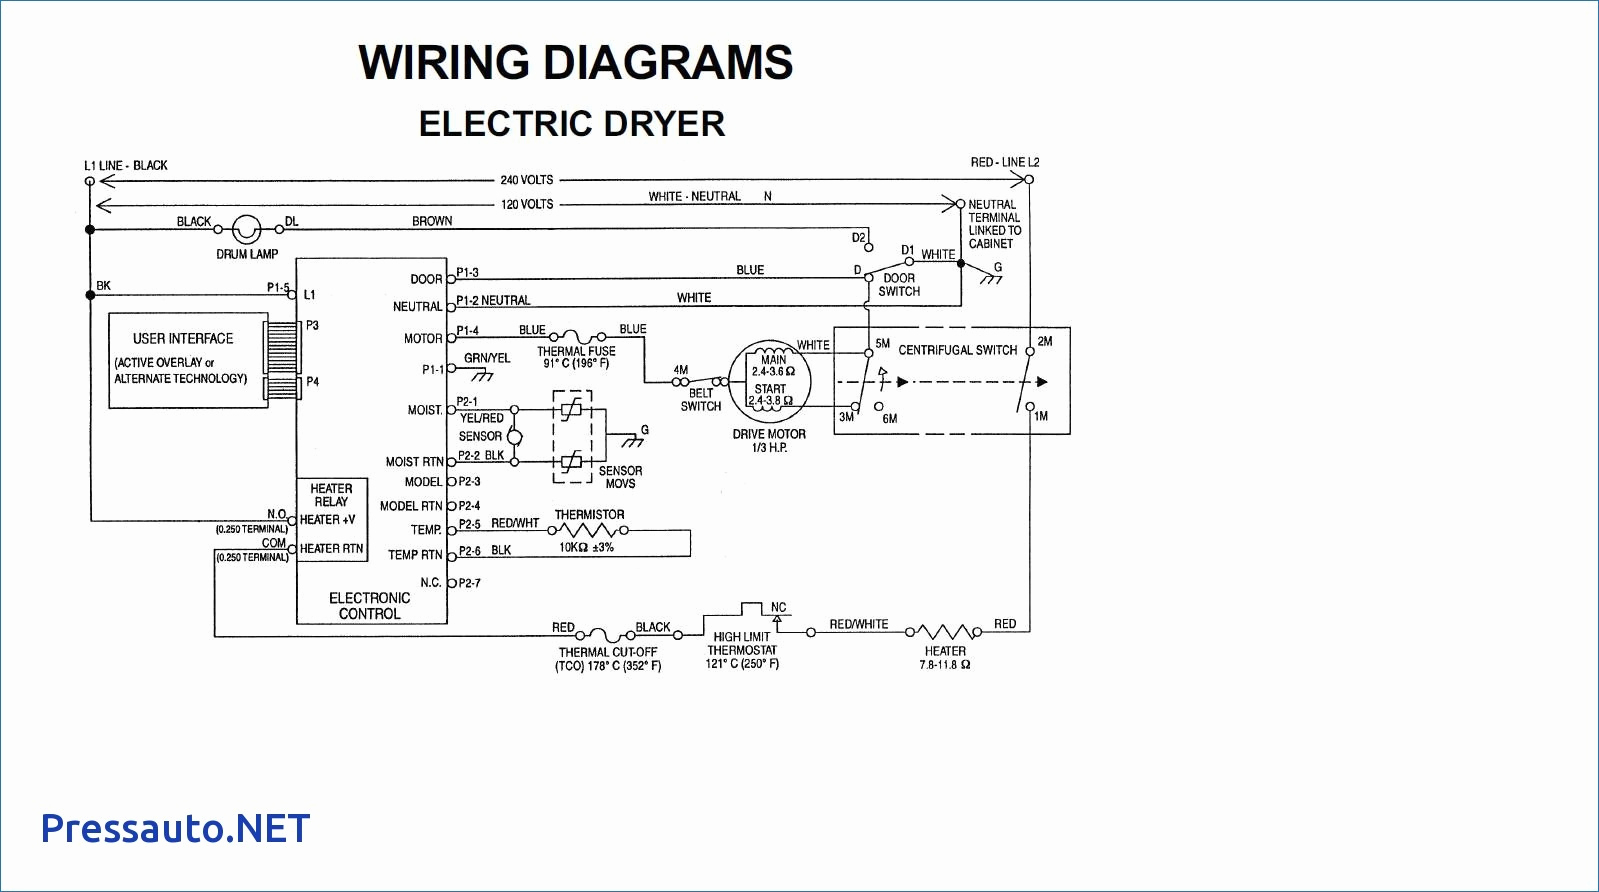 whirlpool gas dryer wiring diagram Collection-Whirlpool Cabrio Dryer Wiring Diagram Fresh Whirlpool Cabrio Dryer Wiring Diagram Dolgular New Whirlpool 10-o